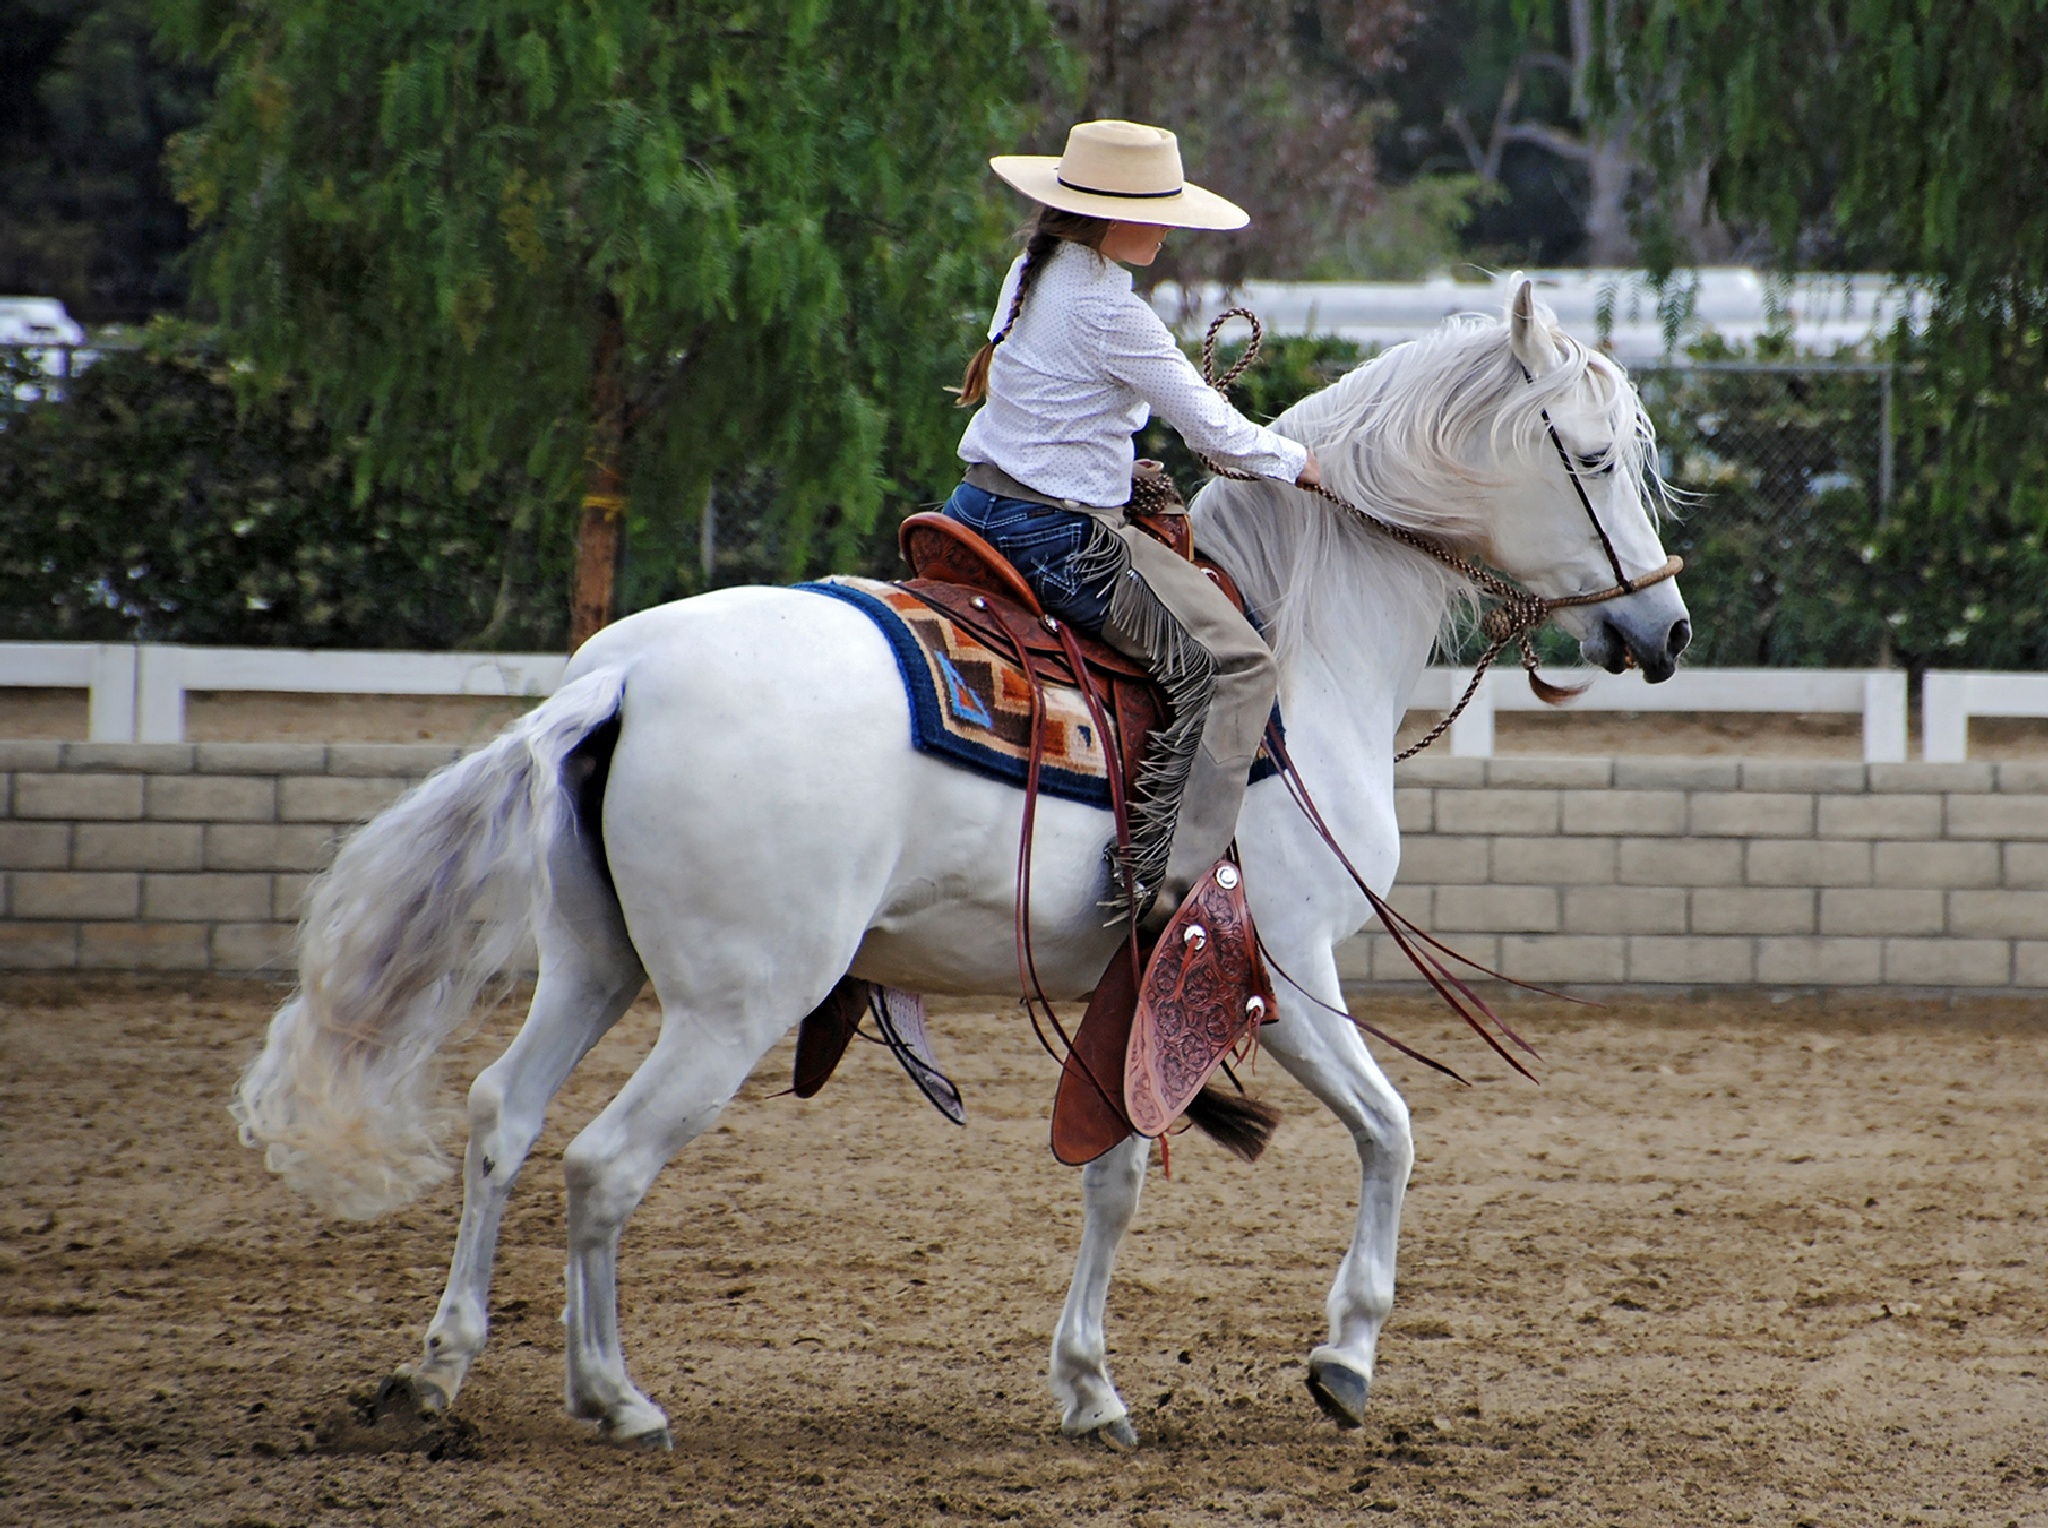 Woman Western Rider by Lormet-Images